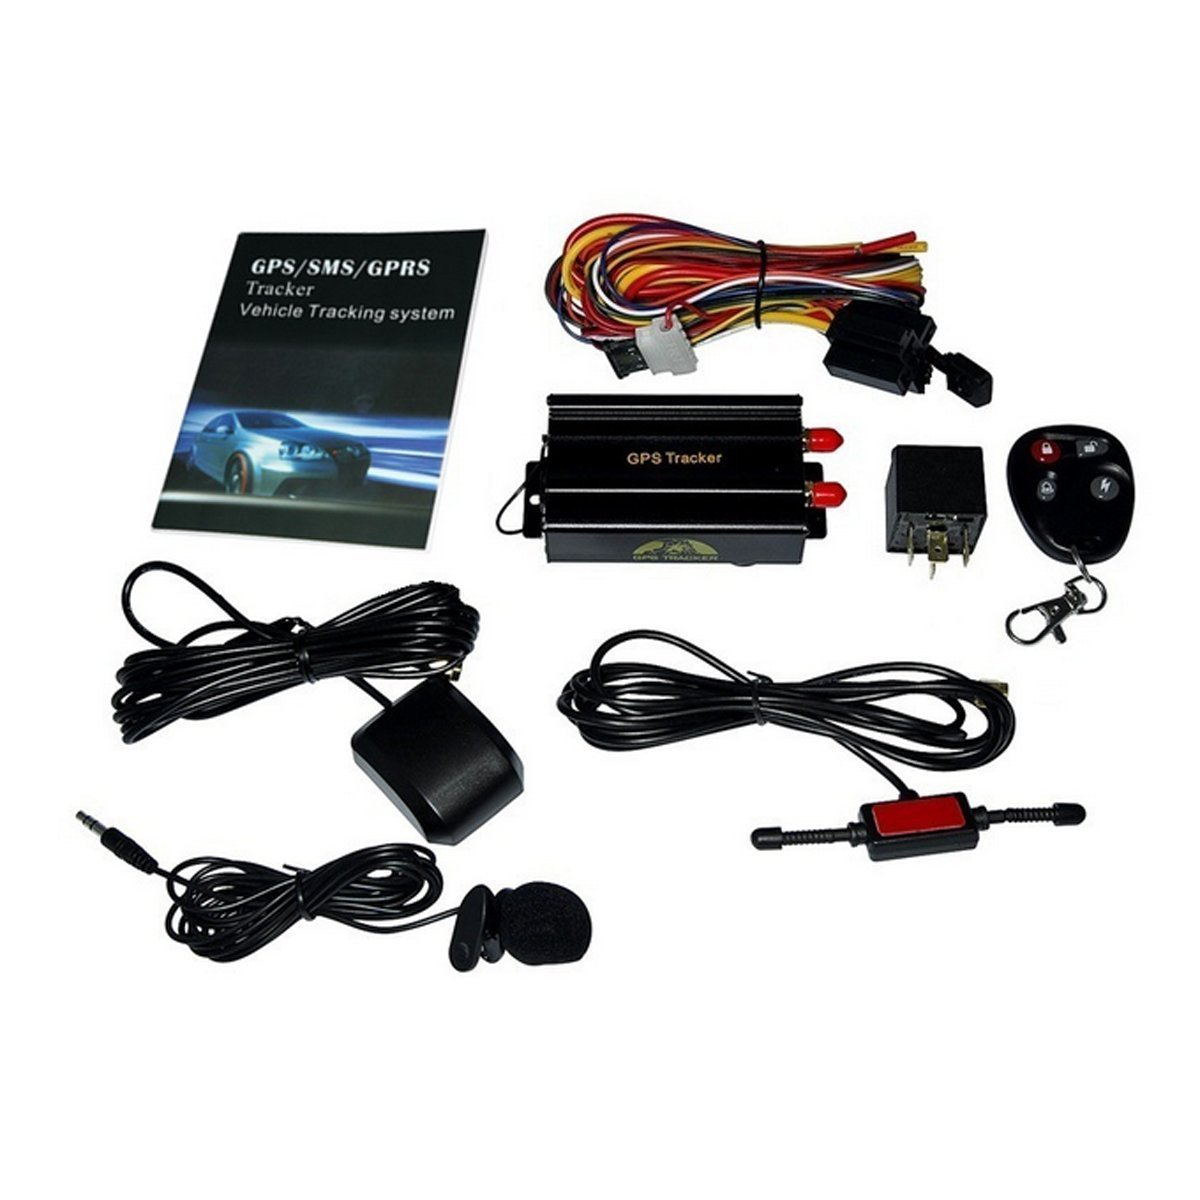 61gT6xfzHOL._SL1200_ amazon com redsun new gps sms gprs tracker tk103b vehicle Wiring Harness Diagram at mifinder.co